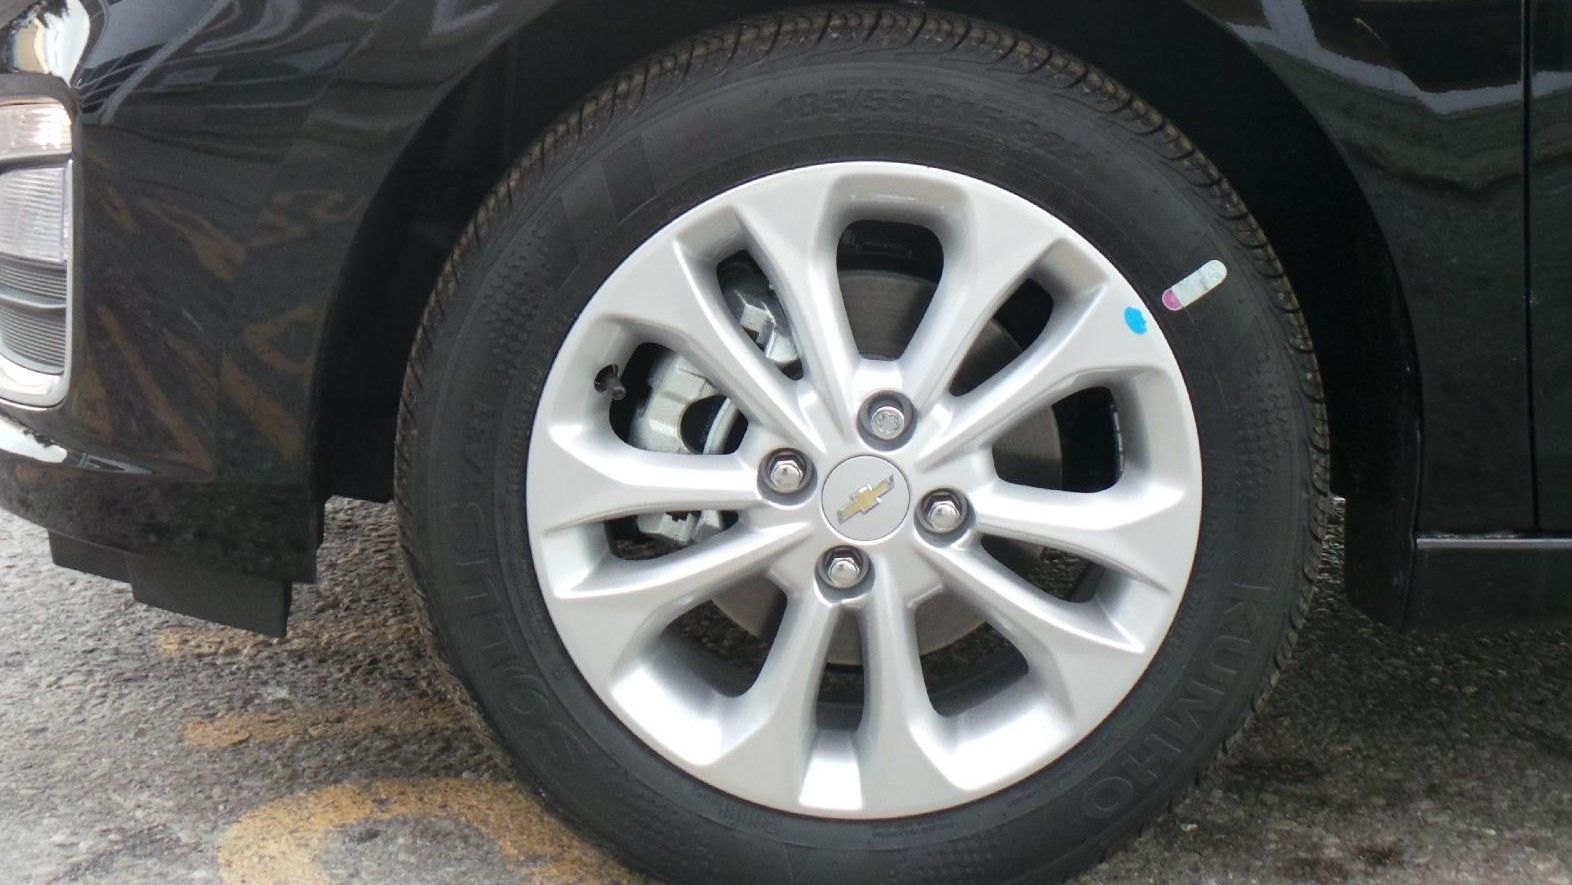 2019 chevrolet spark silver alloy wheel with brake rotor